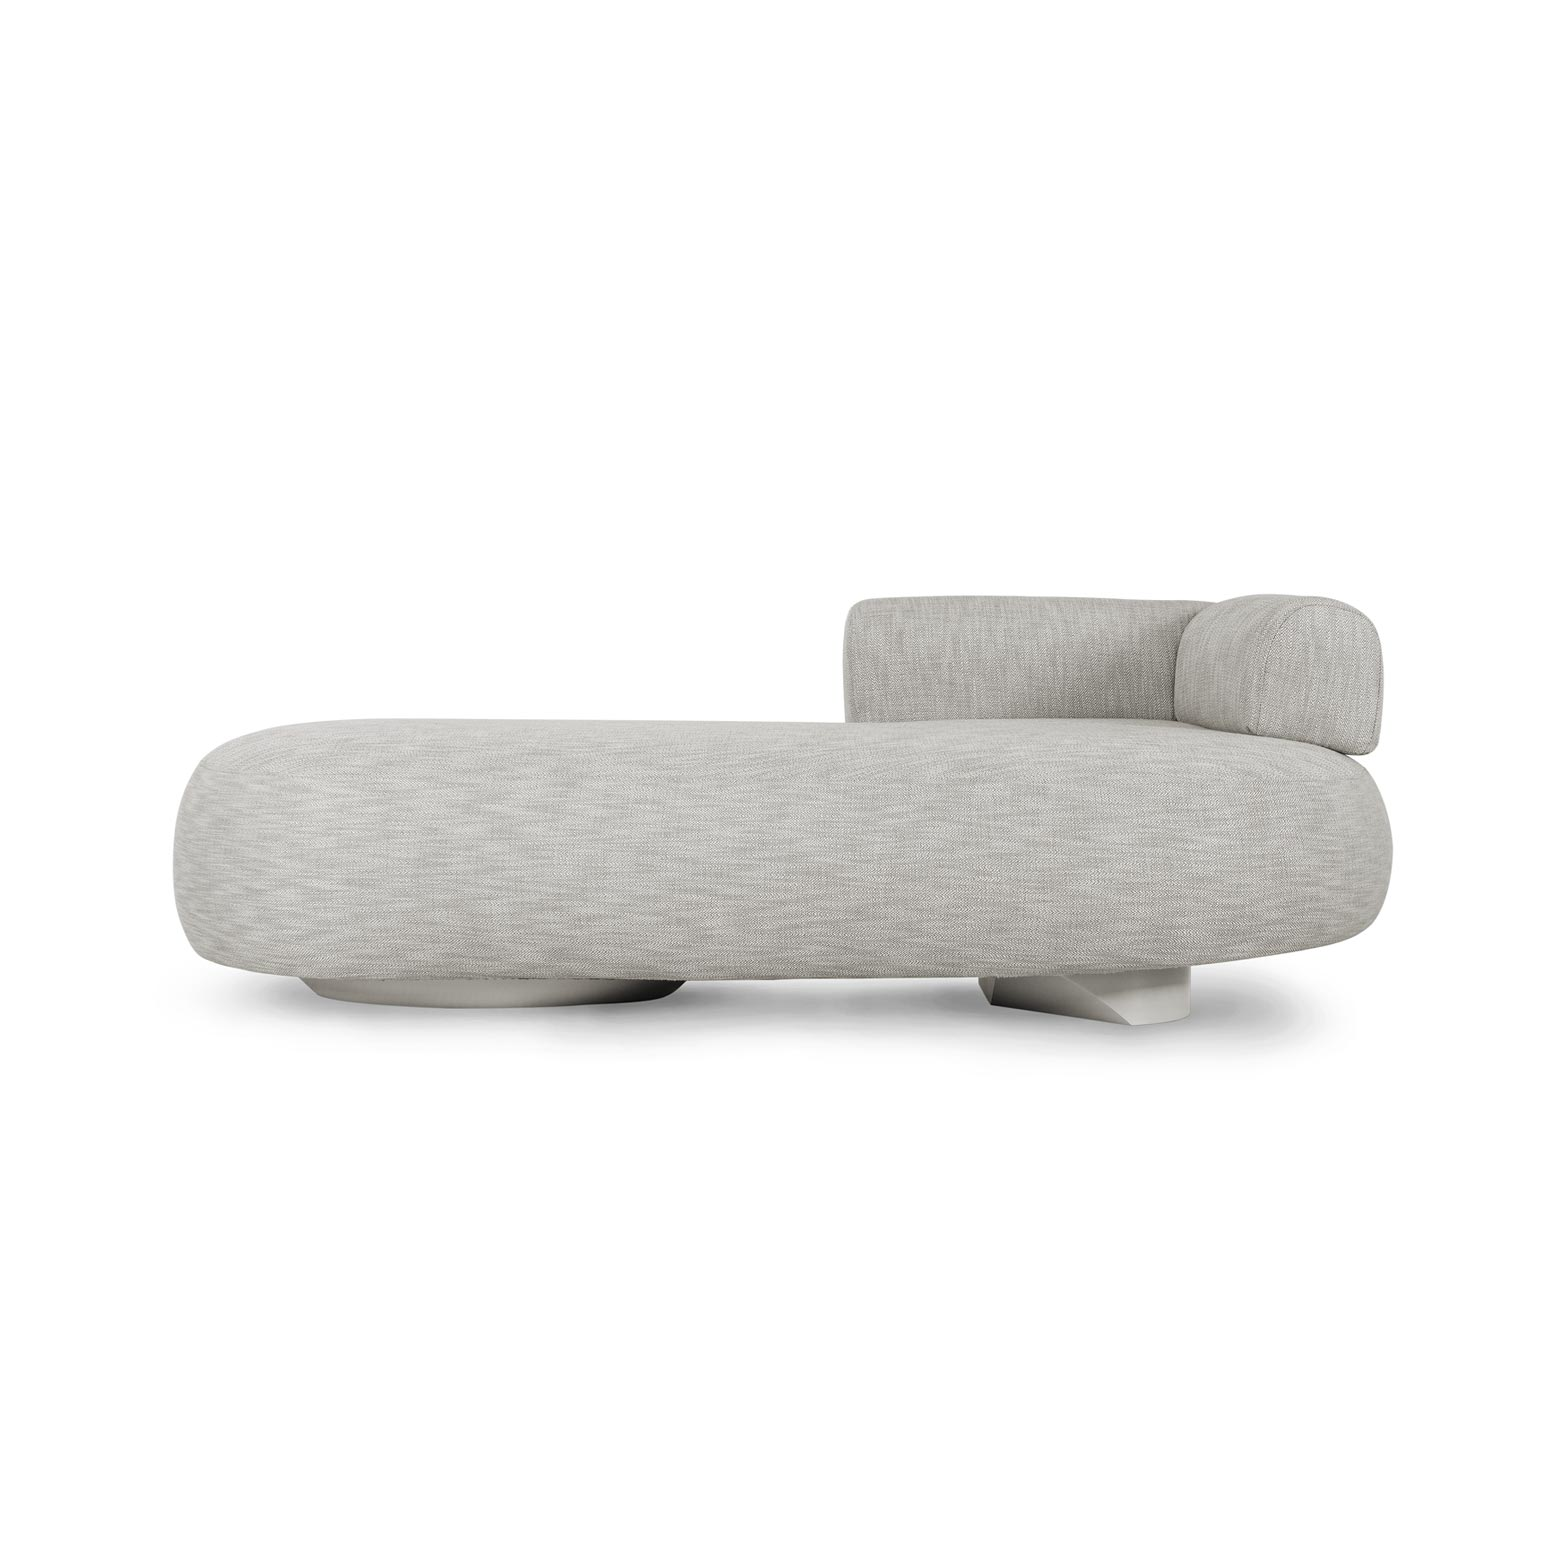 Read more about the article Twins Chaise